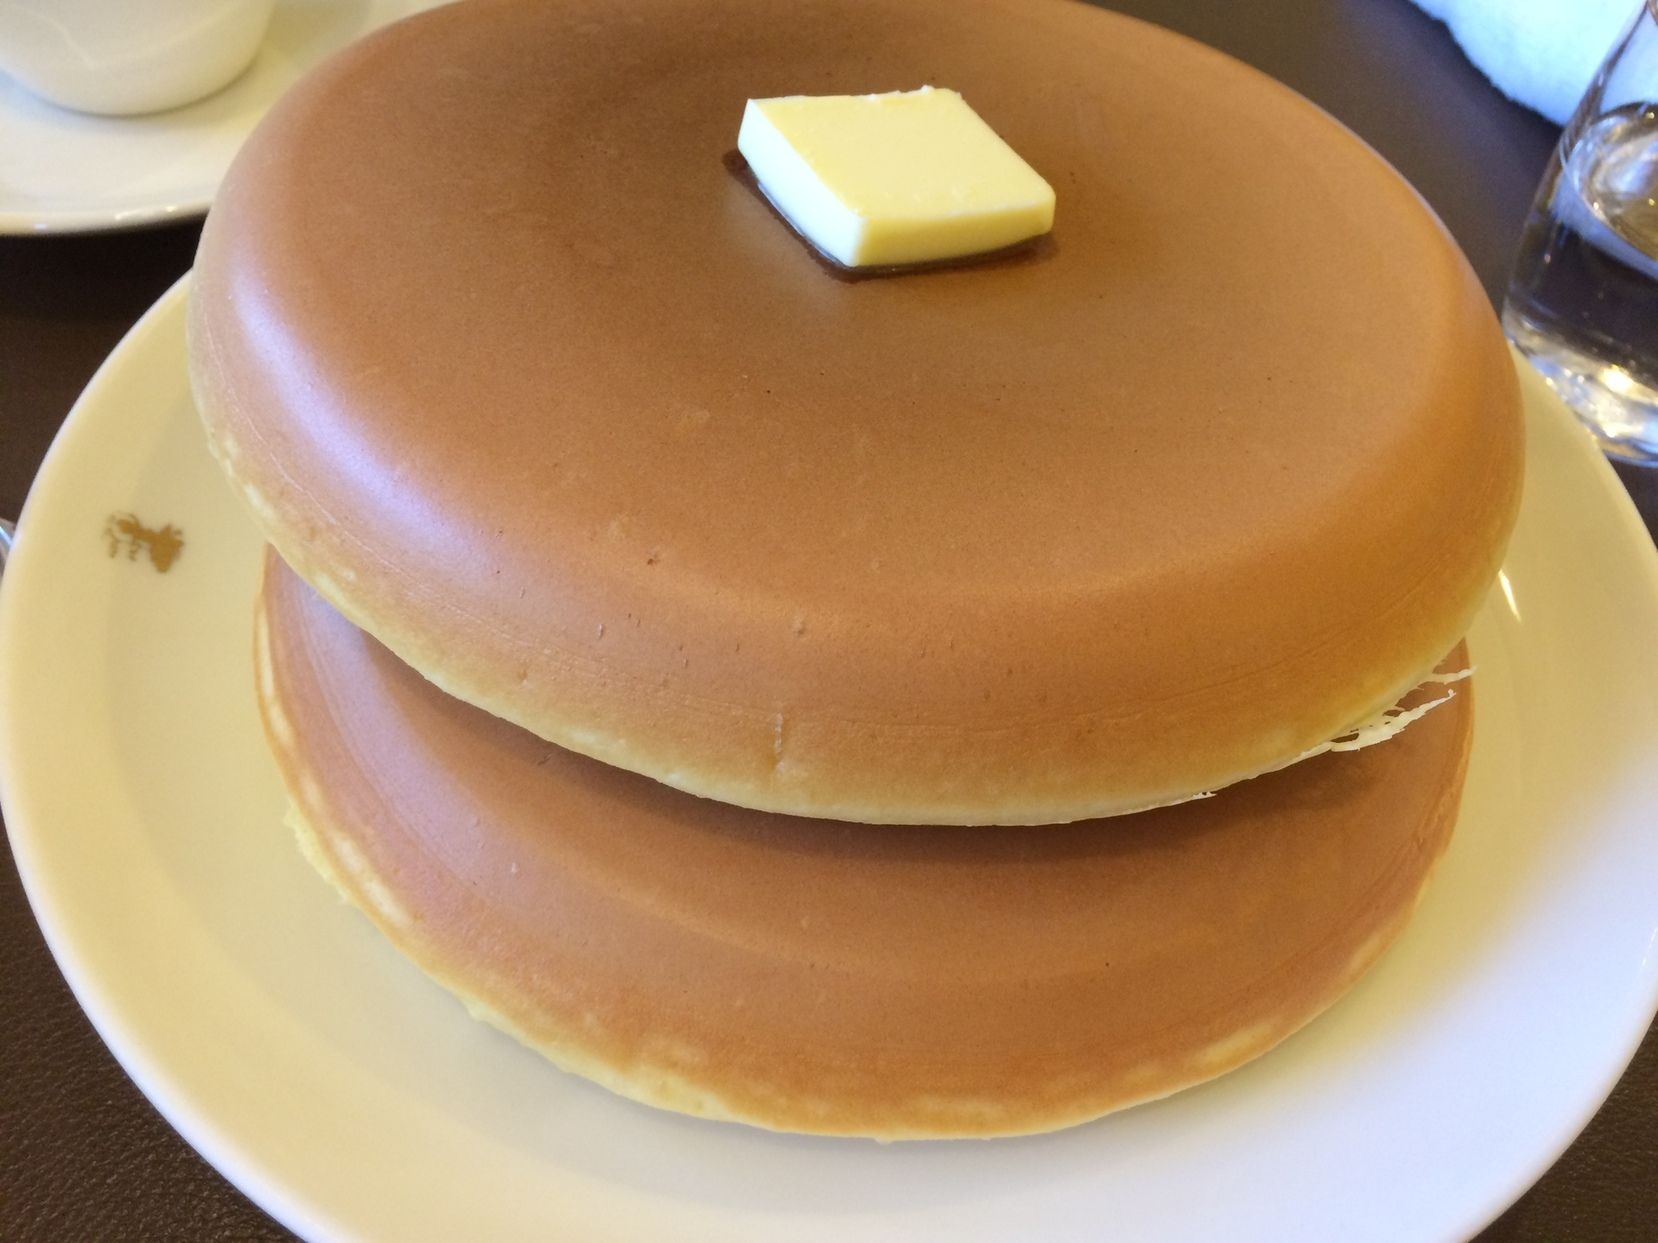 West aoyama garden in tokyo only in japan they can make pancakes only in japan they can make pancakes this perfect ccuart Images